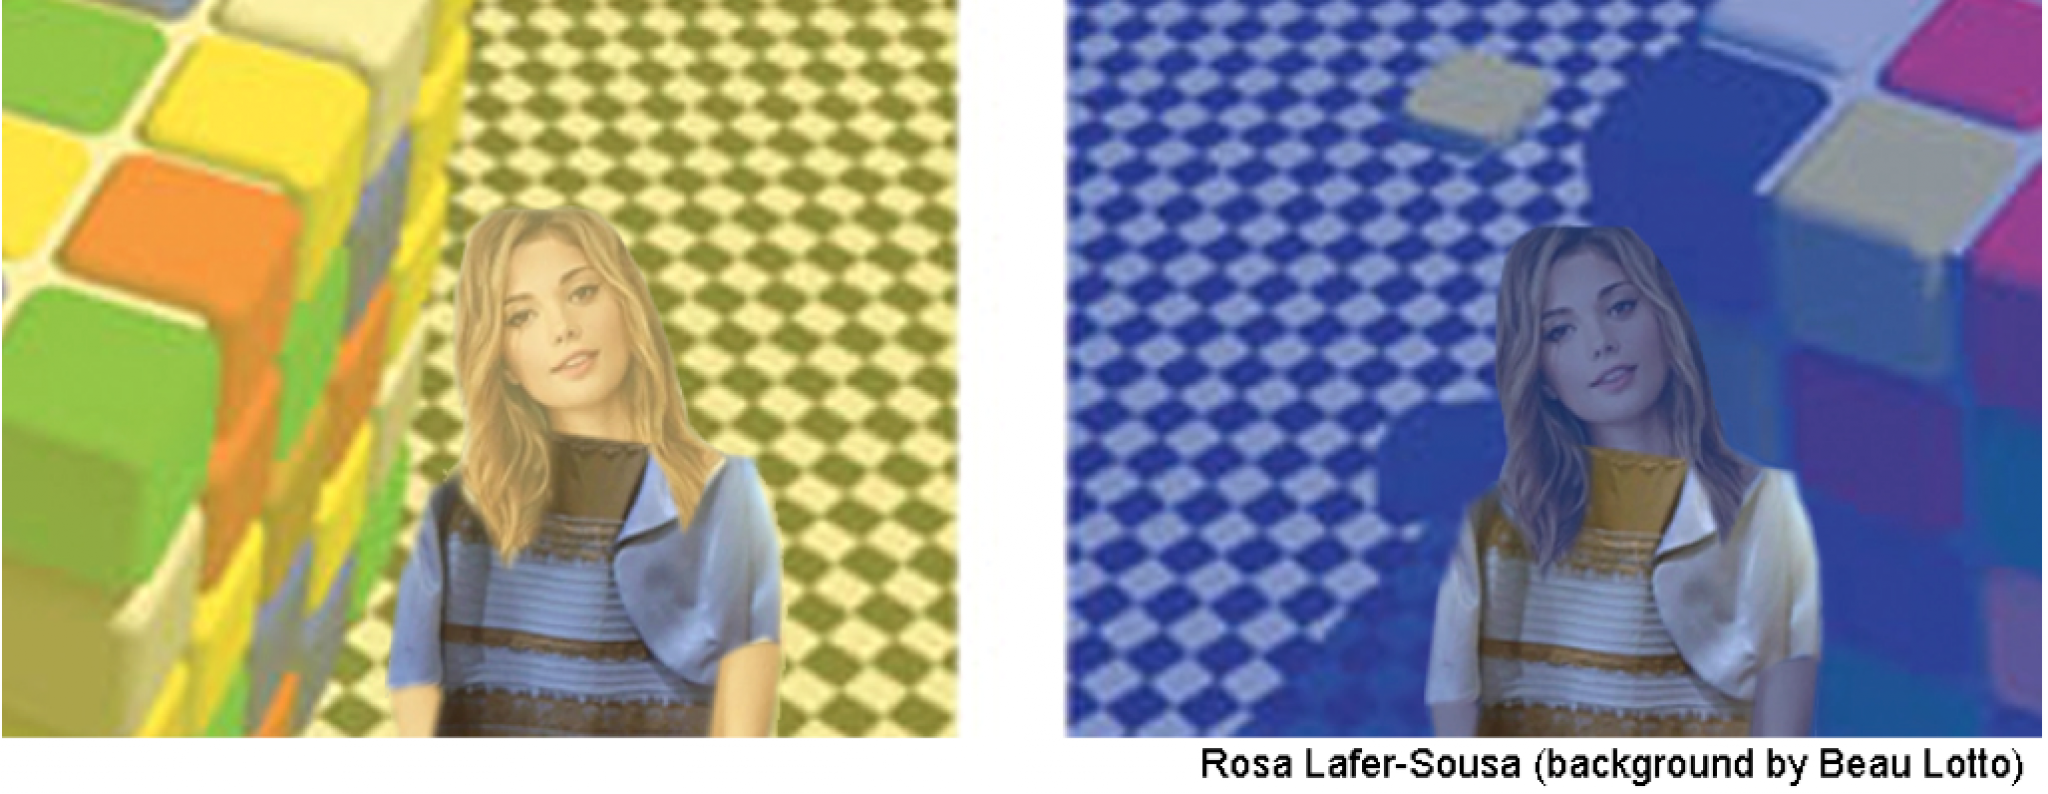 The dress explanation - These Photos Demonstrate How Illumination Can Affect Our Perception Of The Color Of An Object